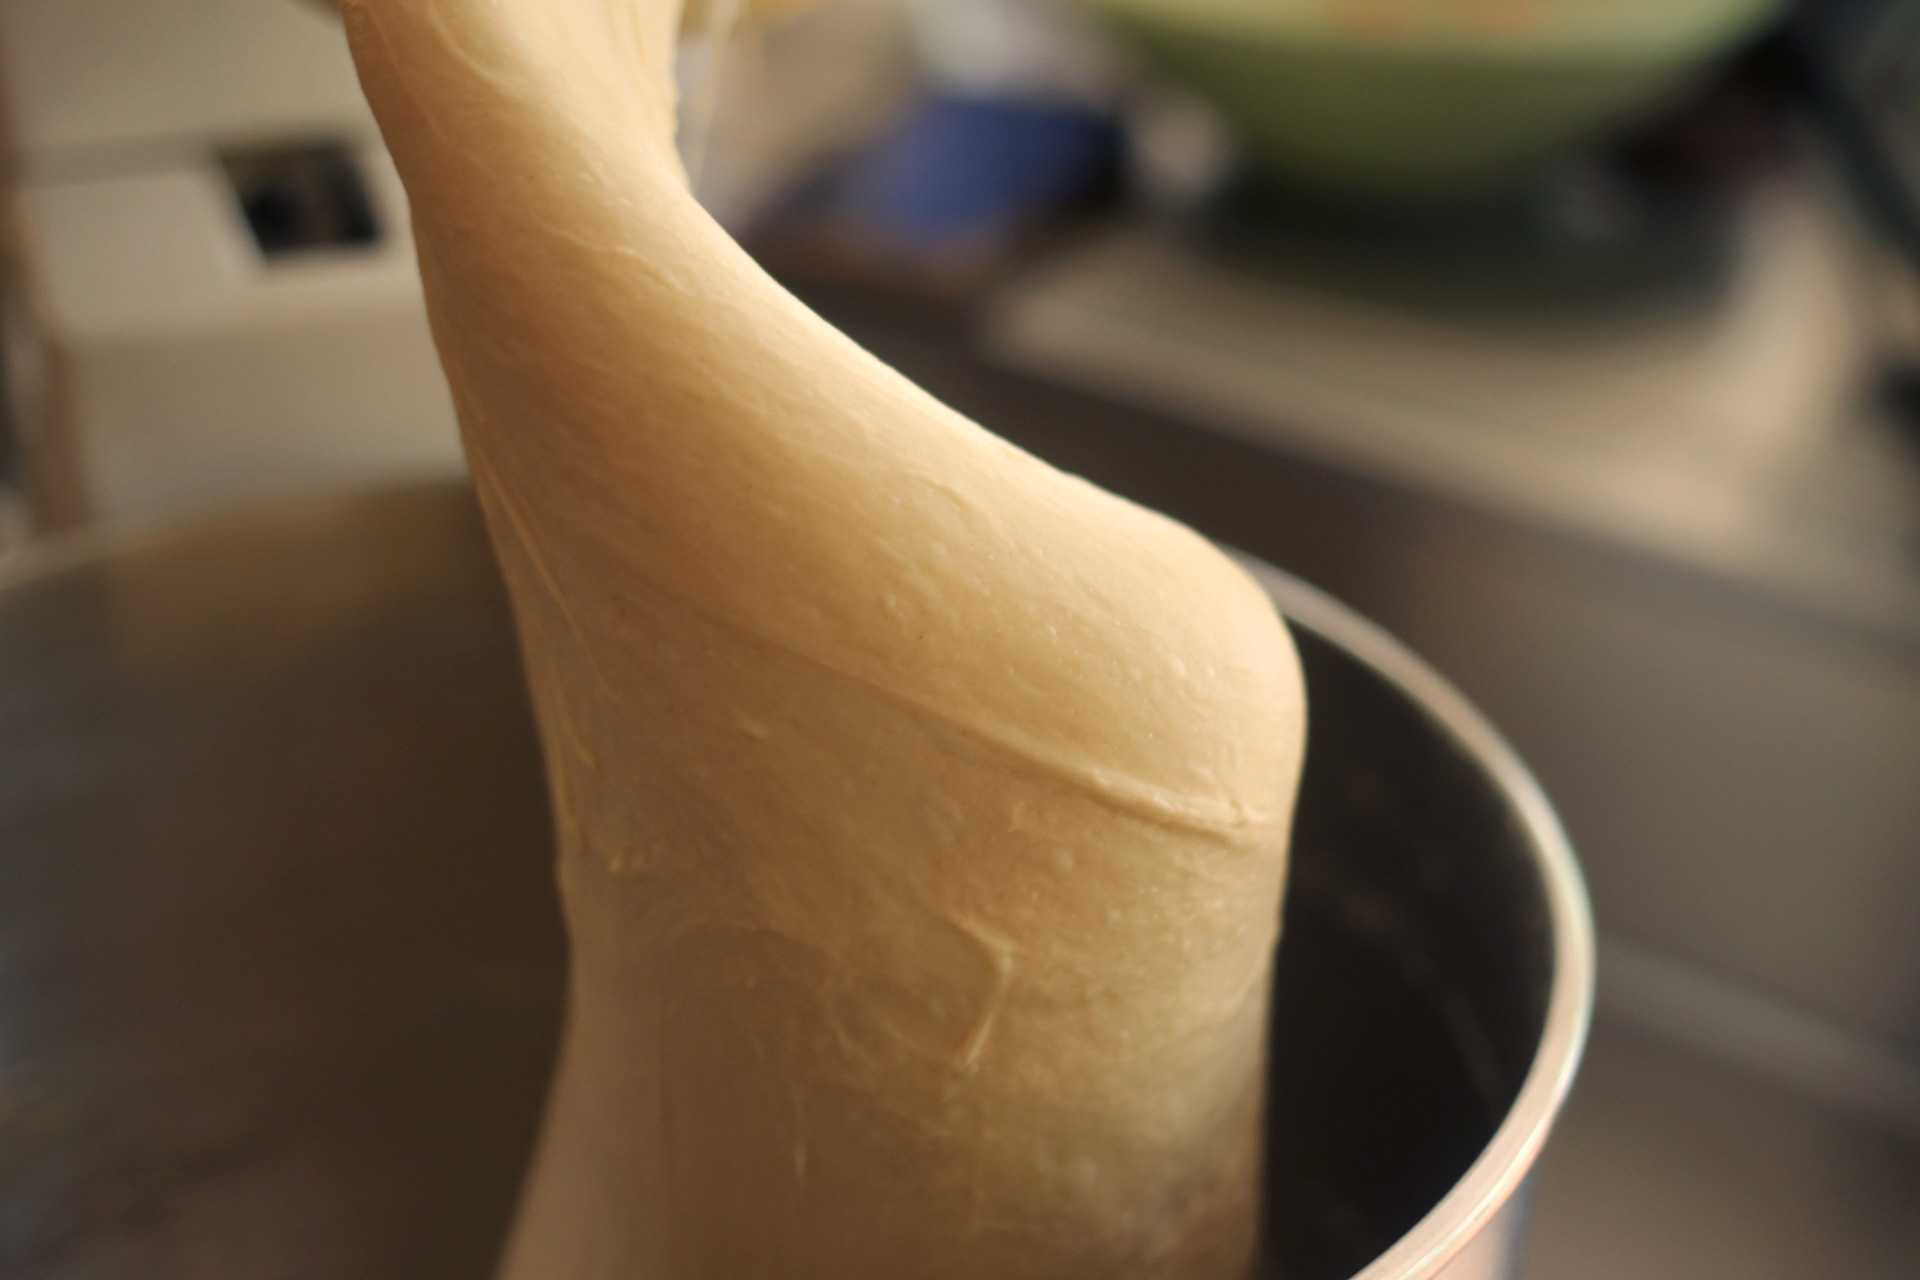 The fully kneaded dough should be smooth and stretchy.